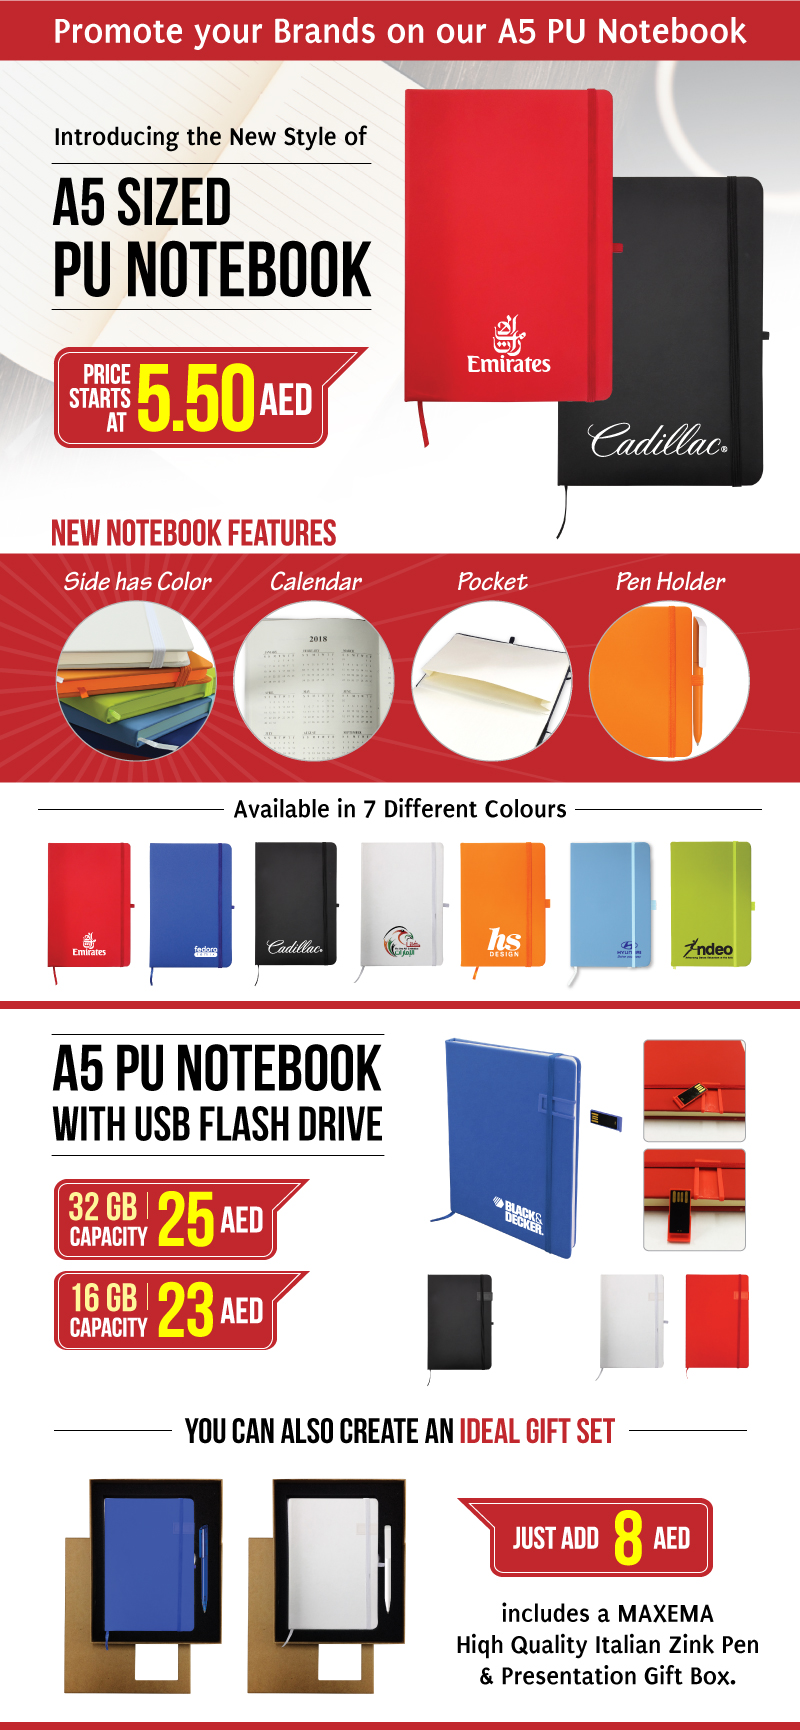 A5 PU Notebook Offers